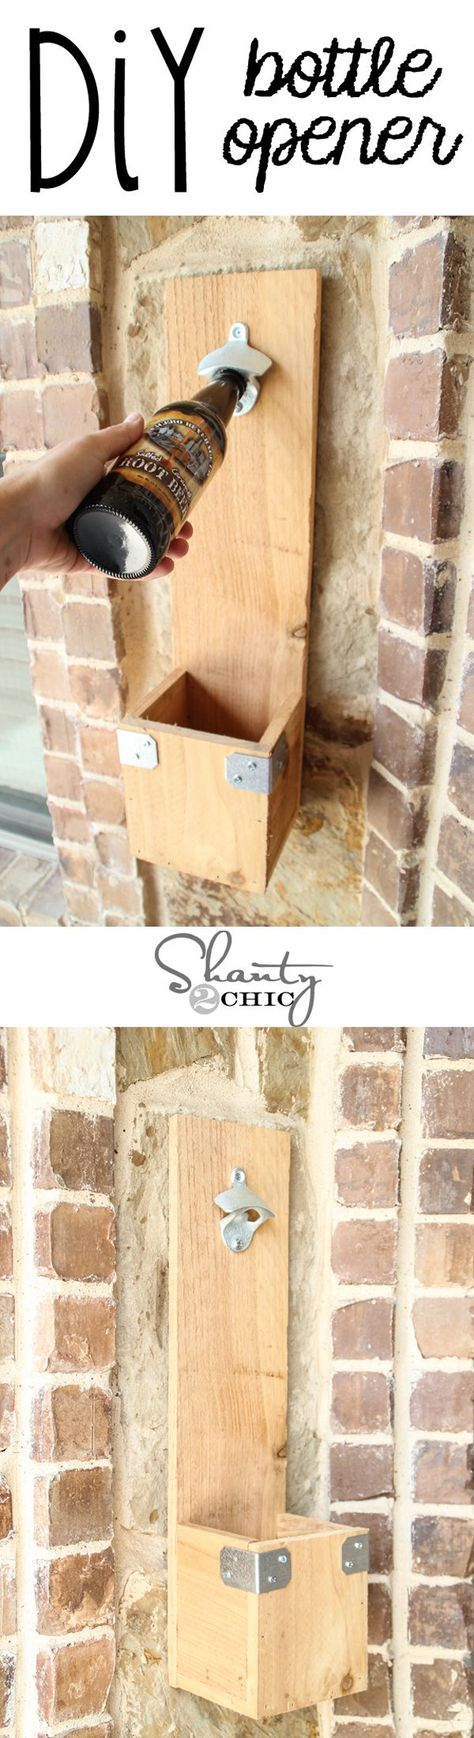 Simple Woodworking Project for Man Cave   DIY Bottle Opener by DIY Ready at diyready.com/... #woodworking